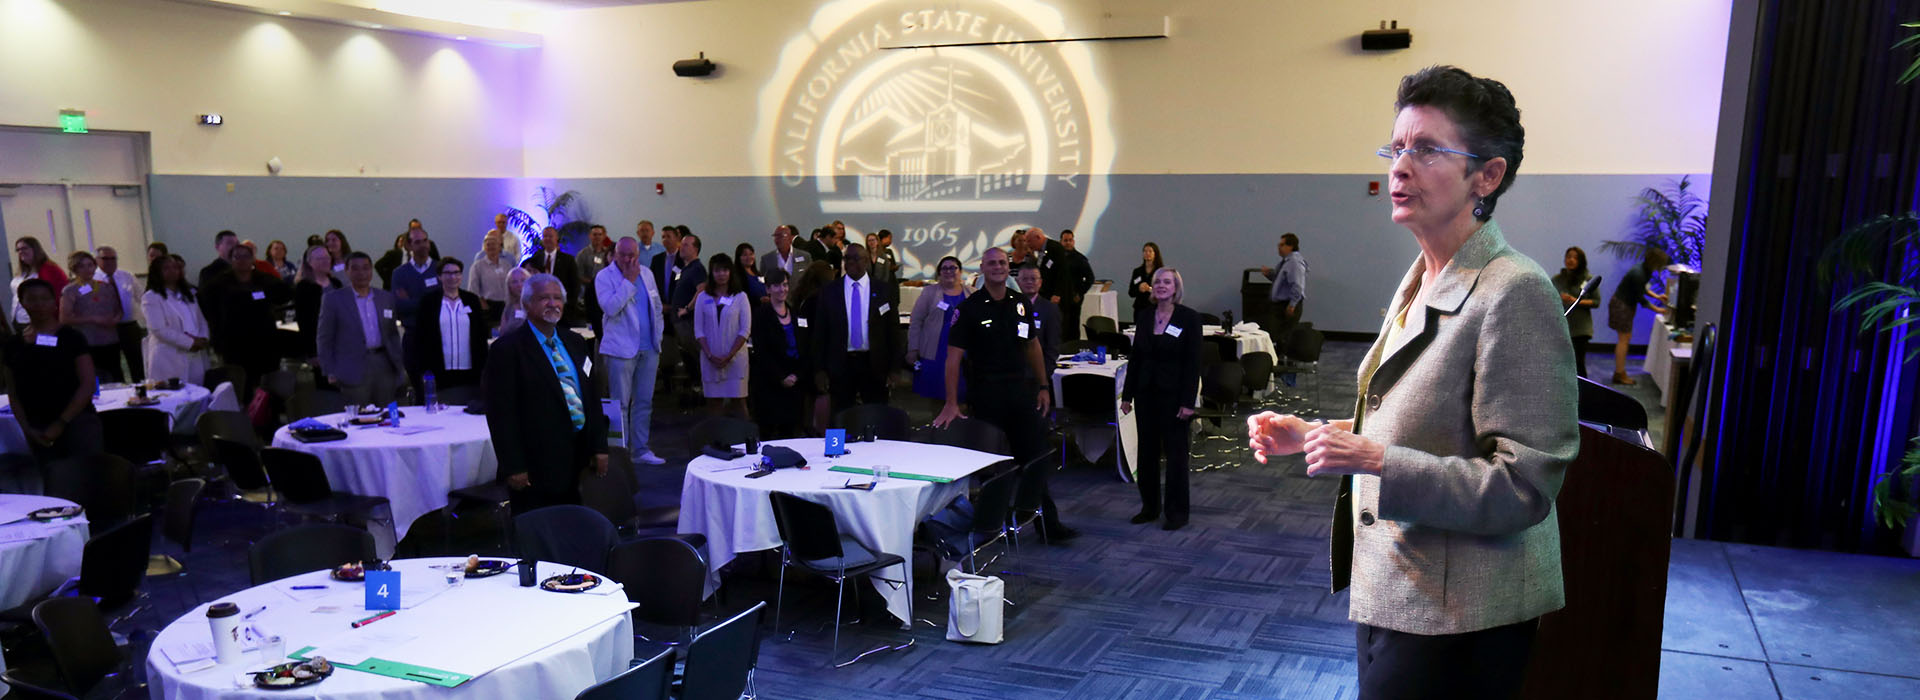 Kathy Obear leads Collegiality Forum at CSUSB